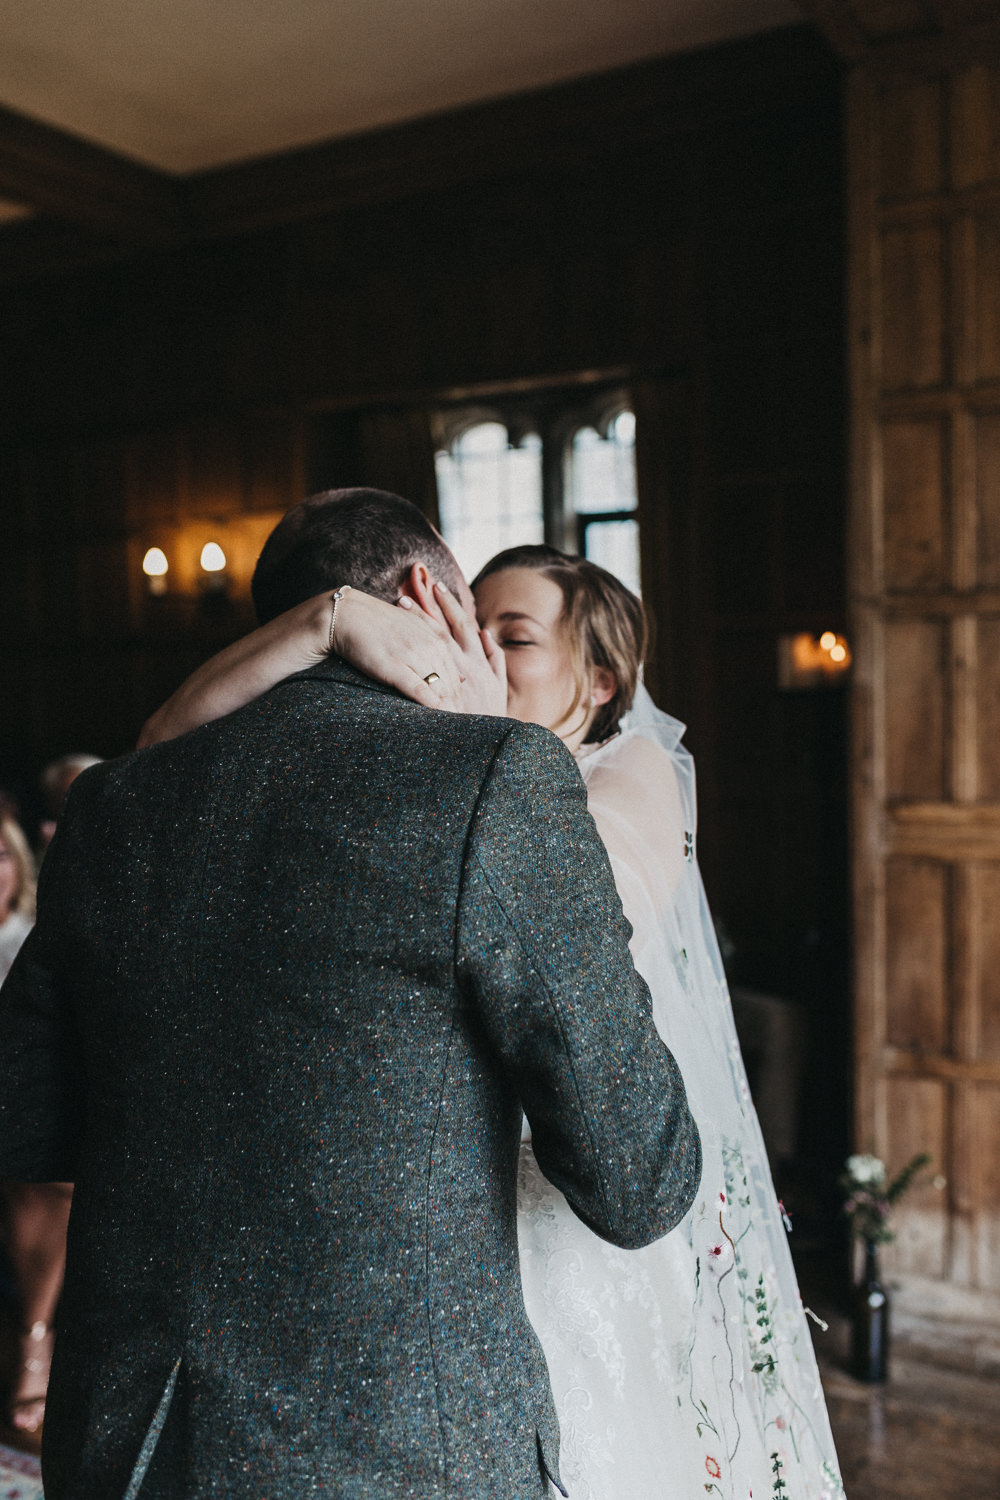 Bride Bridal Lace Strappy Dress Veil Gown Tweed Suit Groom Lympne Castle Wedding Kev Elkins Photography